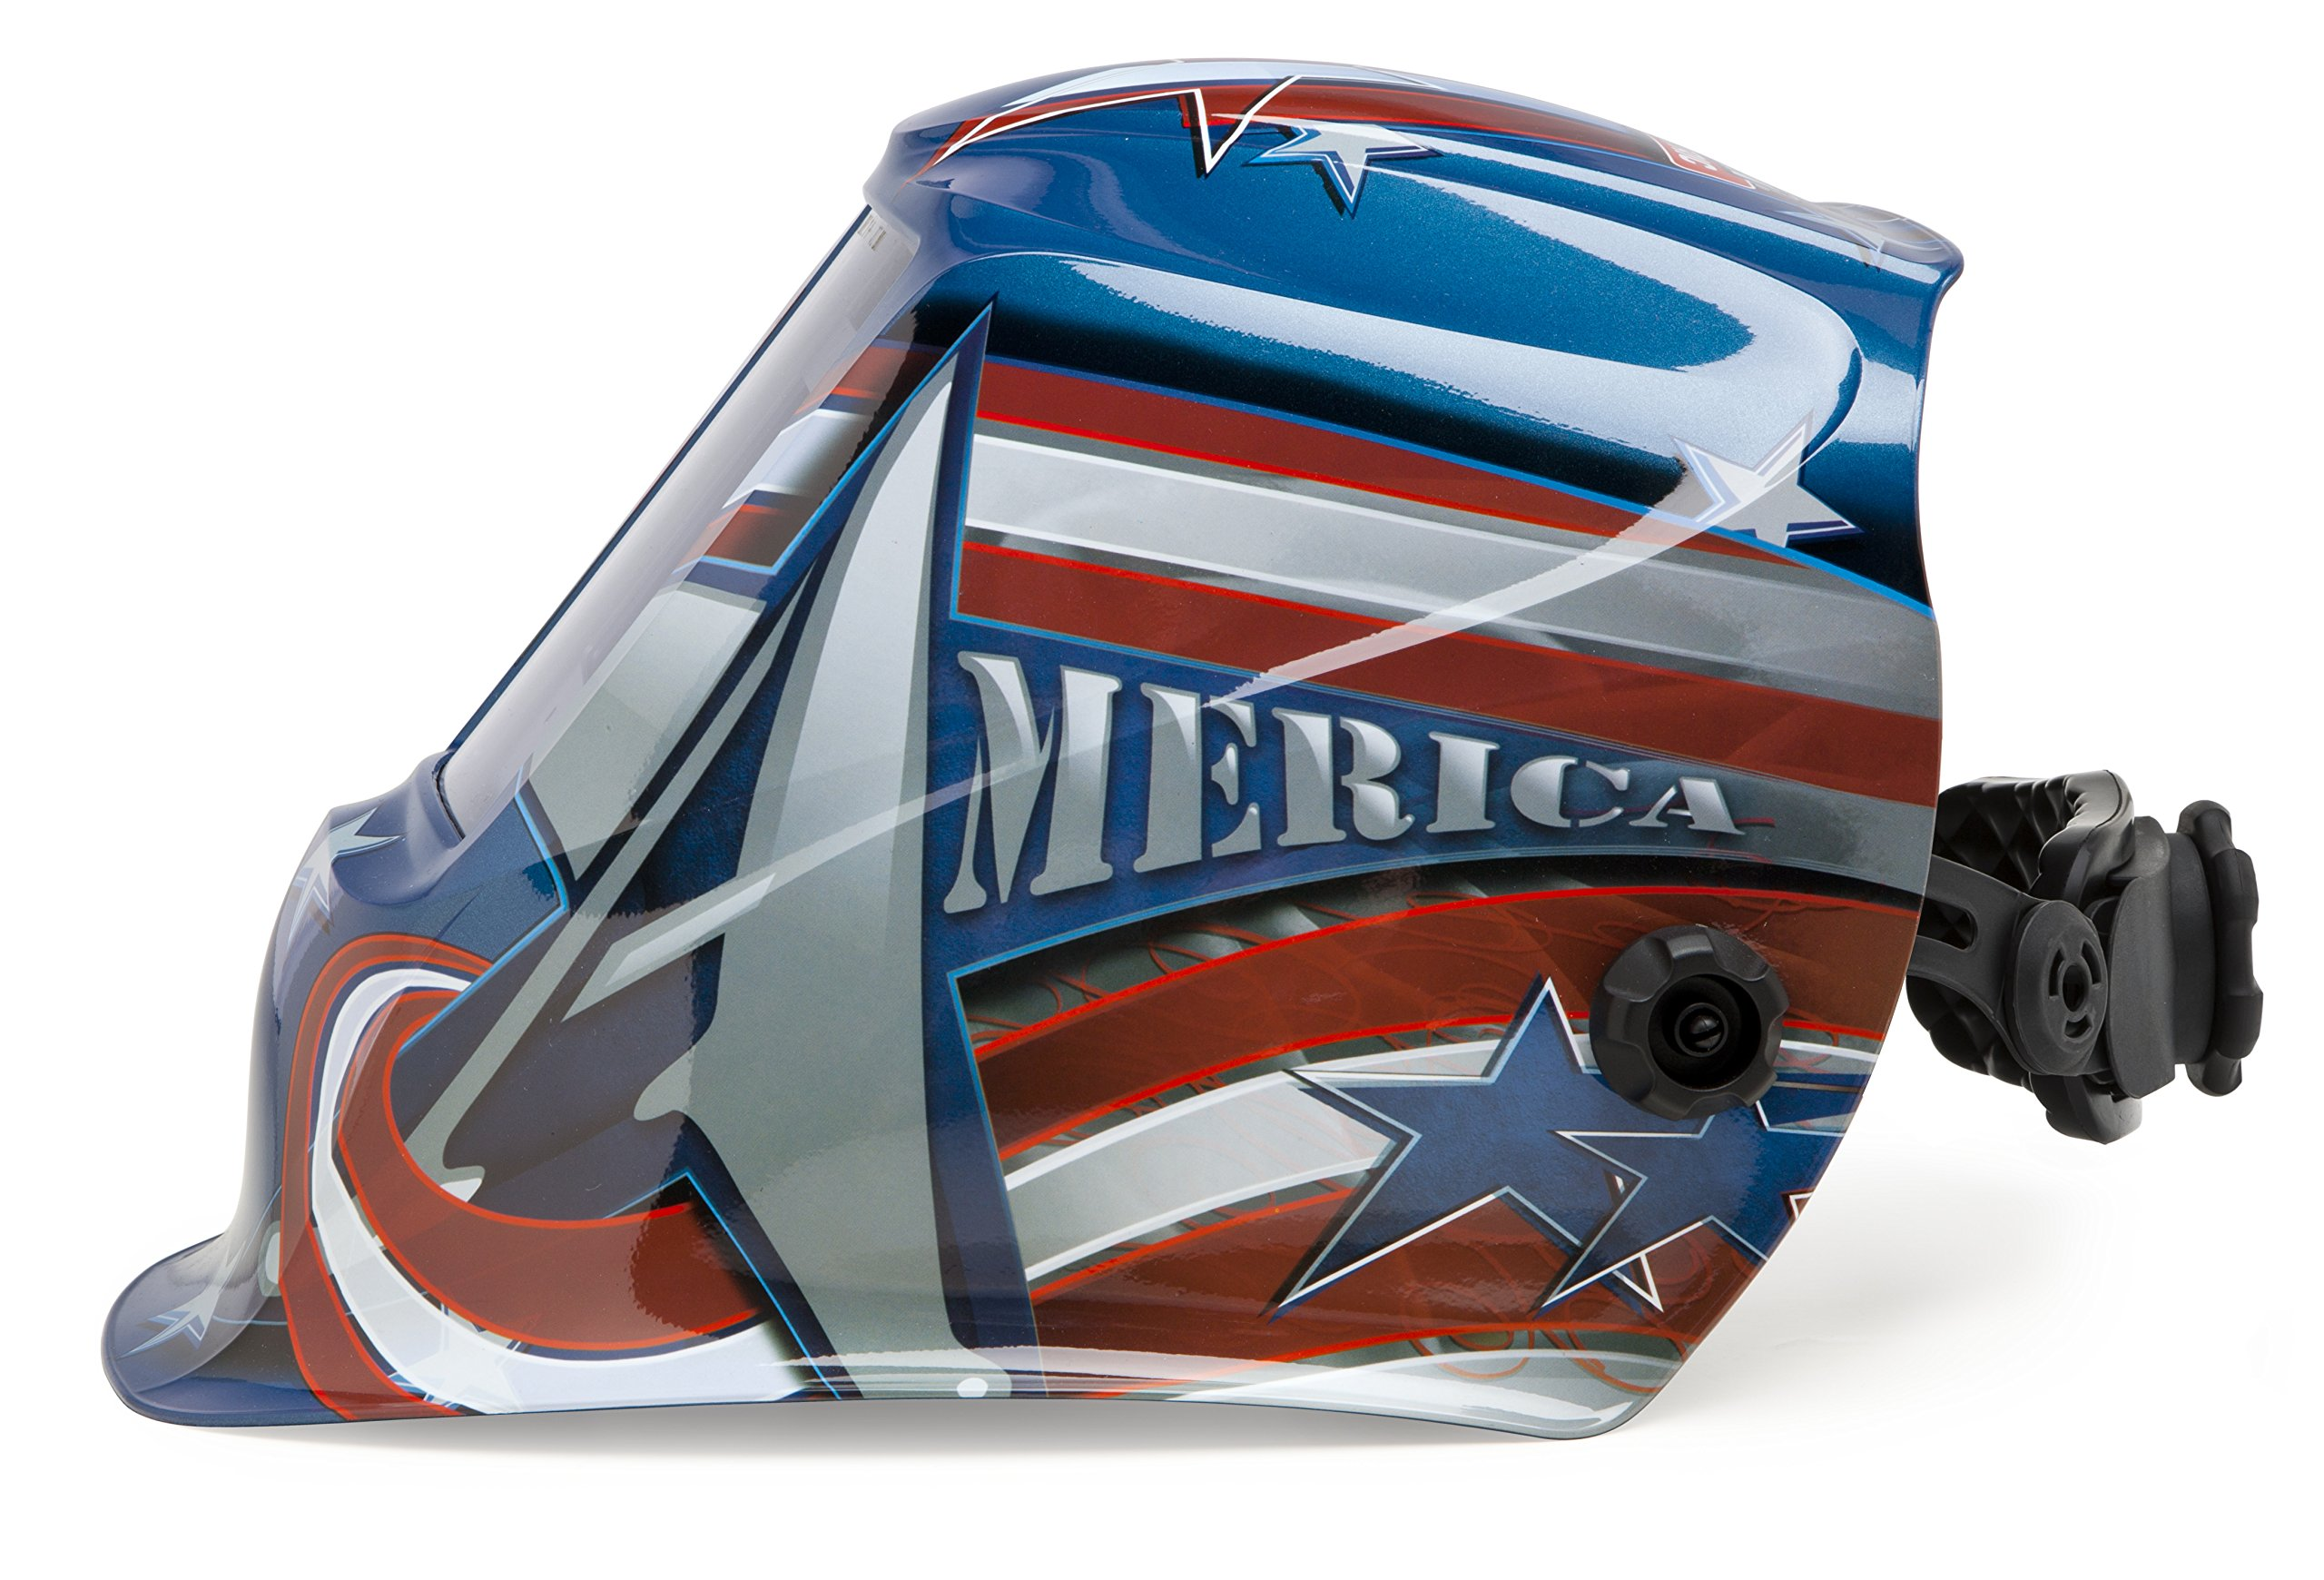 Lincoln Electric VIKING 2450 All American Welding Helmet with 4C Lens Technology - K3174-3 by Lincoln Electric (Image #3)